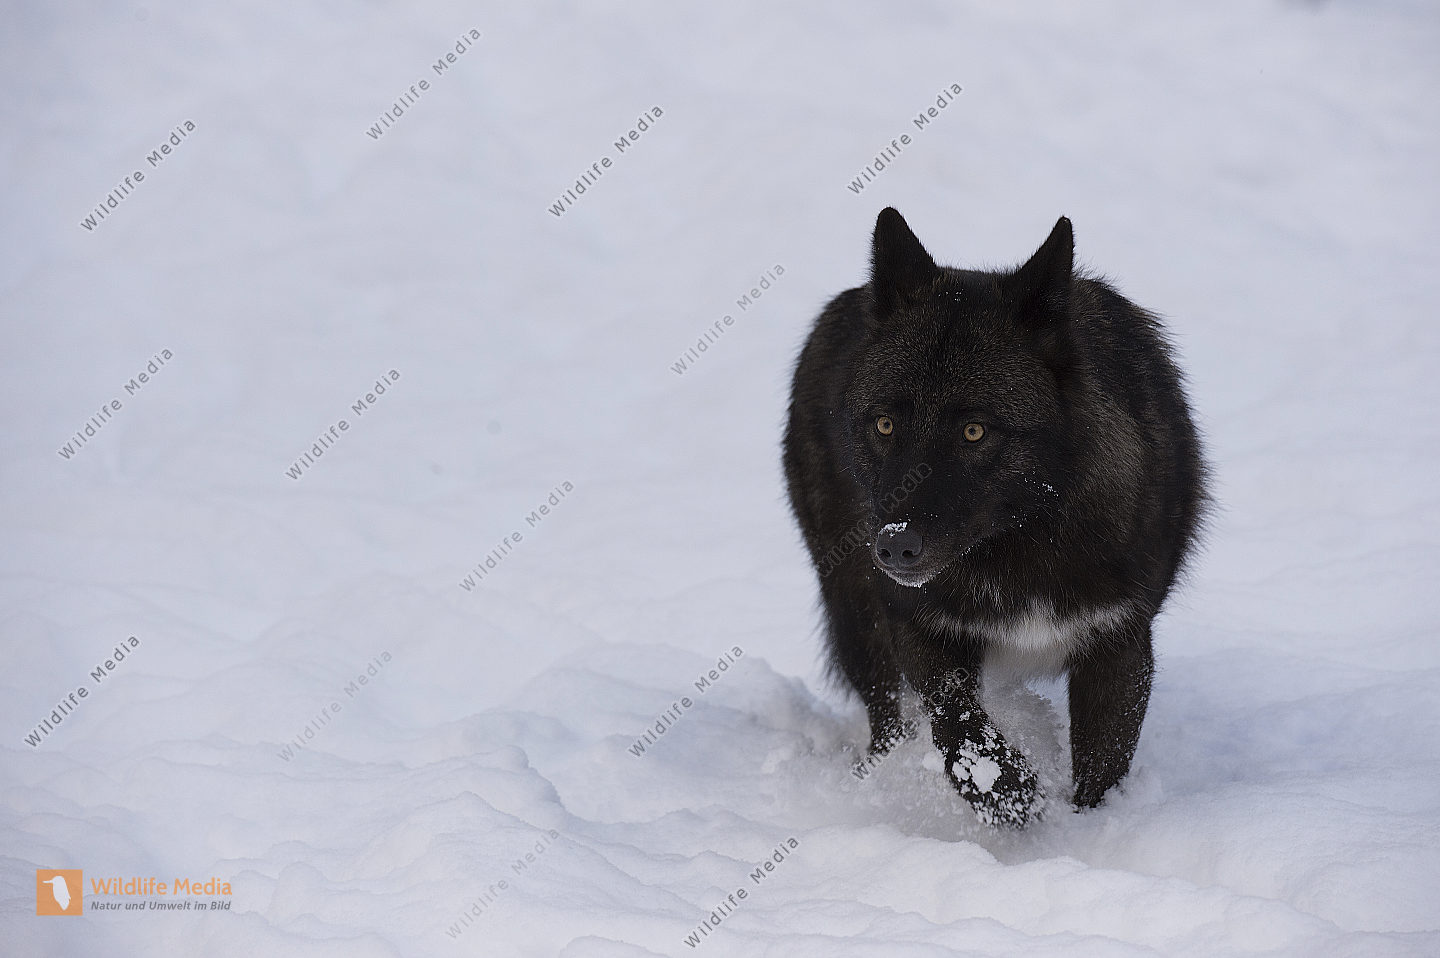 Timberwolf Canis lupus lycaon